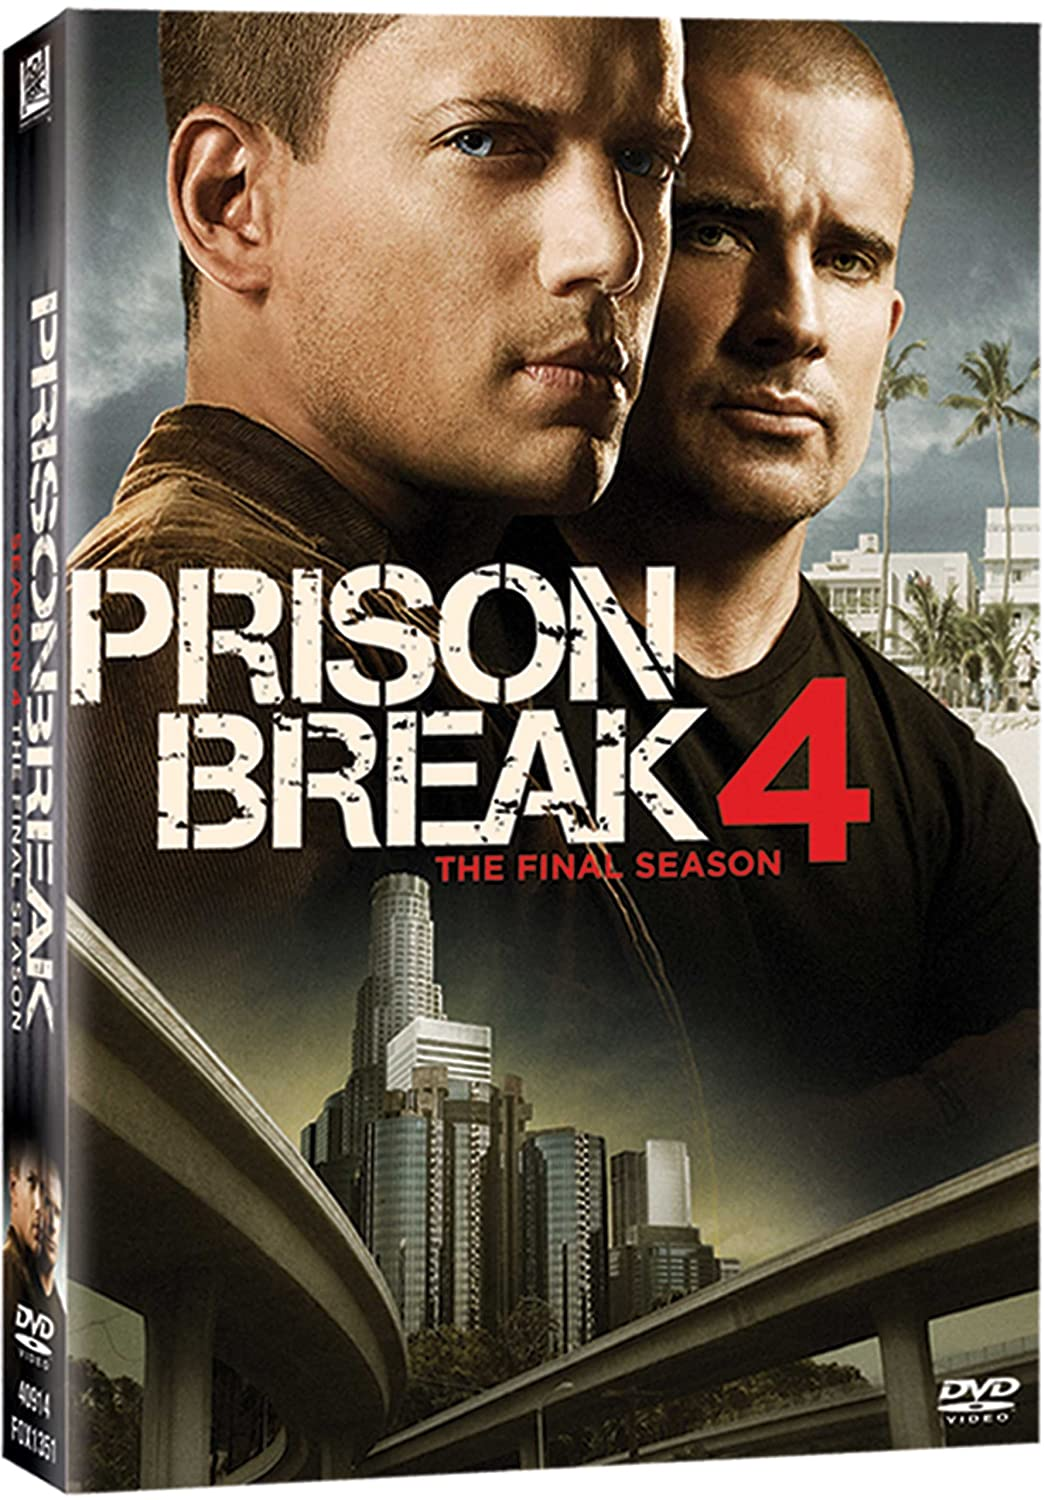 Amazonin Buy Prison Break Season 4 Dvd Blu Ray Online